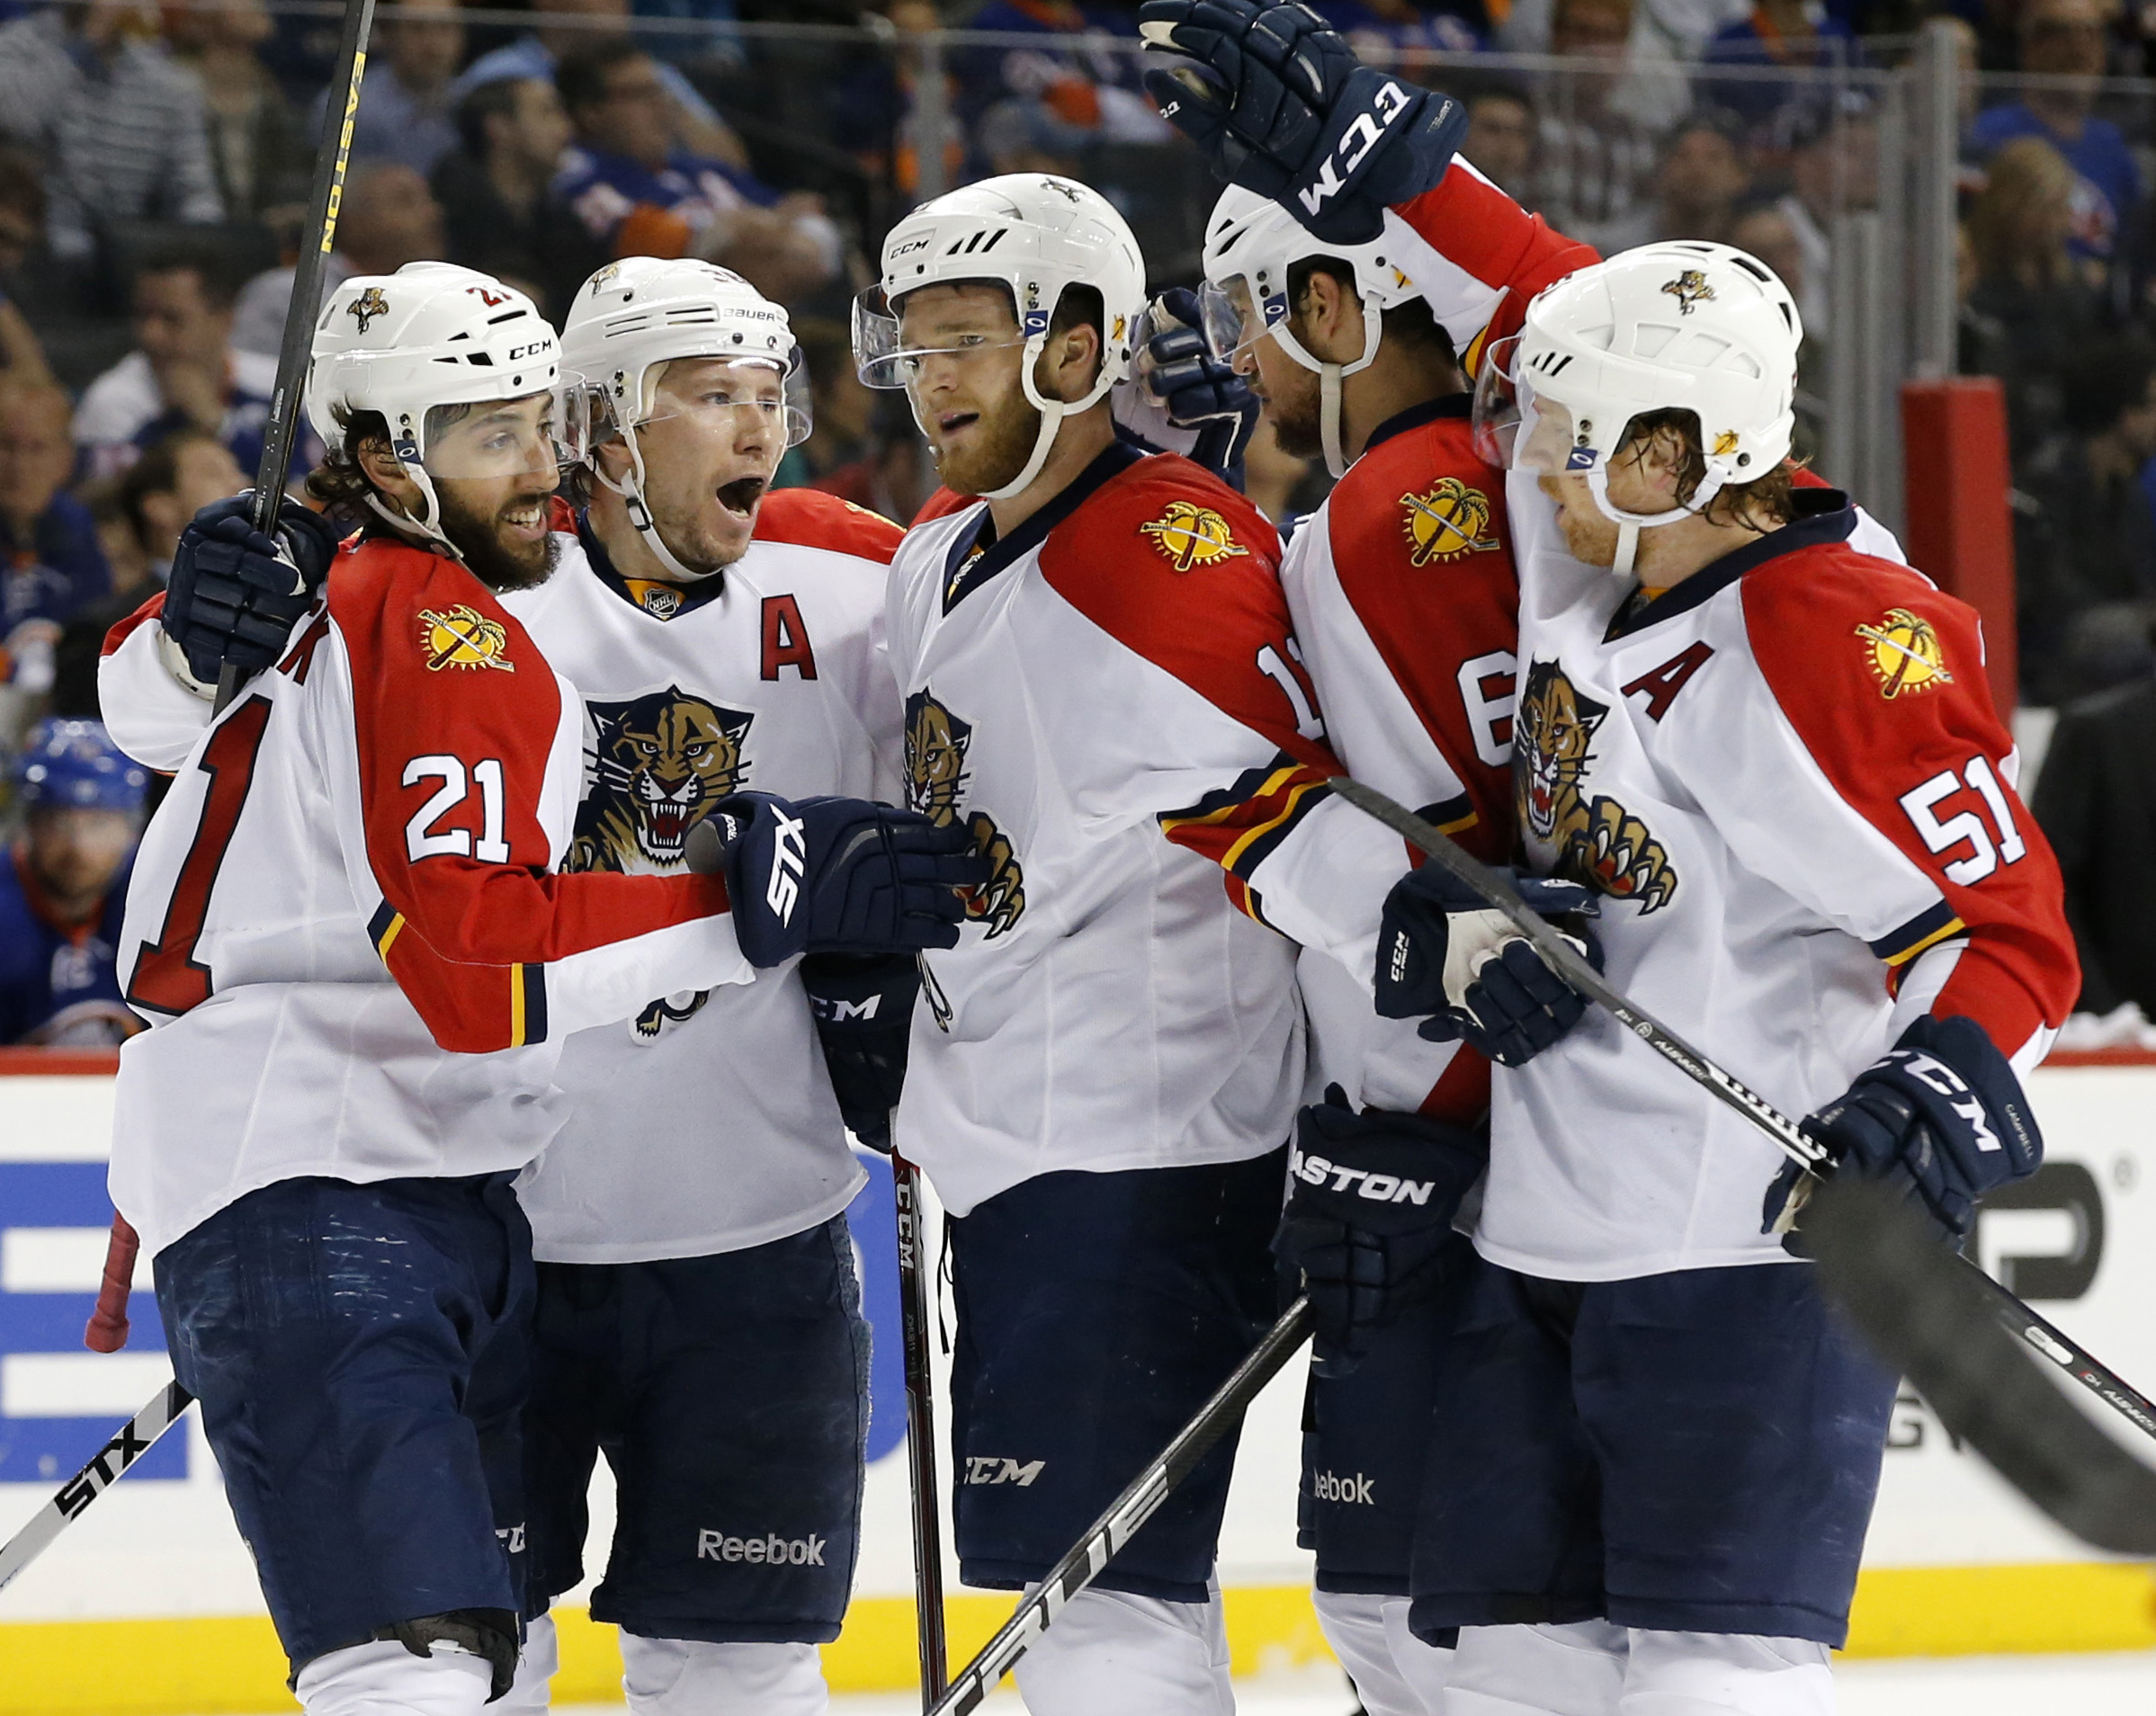 Teammates celebrate with Florida Panthers center Jonathan Huberdeau, center, after he scored a goal in the first period of Game 6 of an NHL hockey first-round Stanley Cup playoff series against the New York Islanders in New York, Sunday, April 24, 2016. (